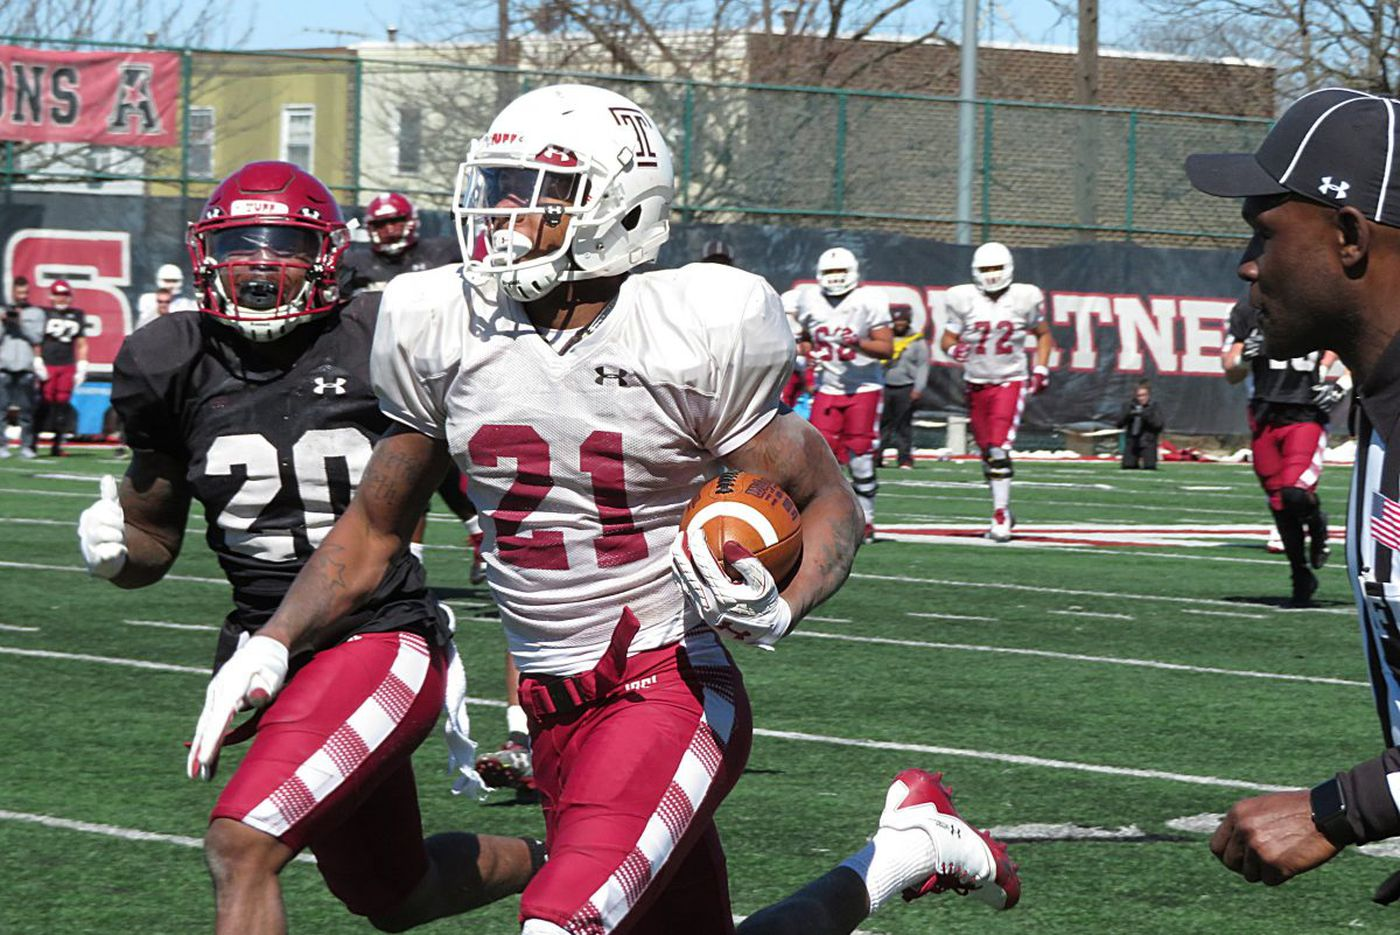 Temple developing two-way players during spring practice